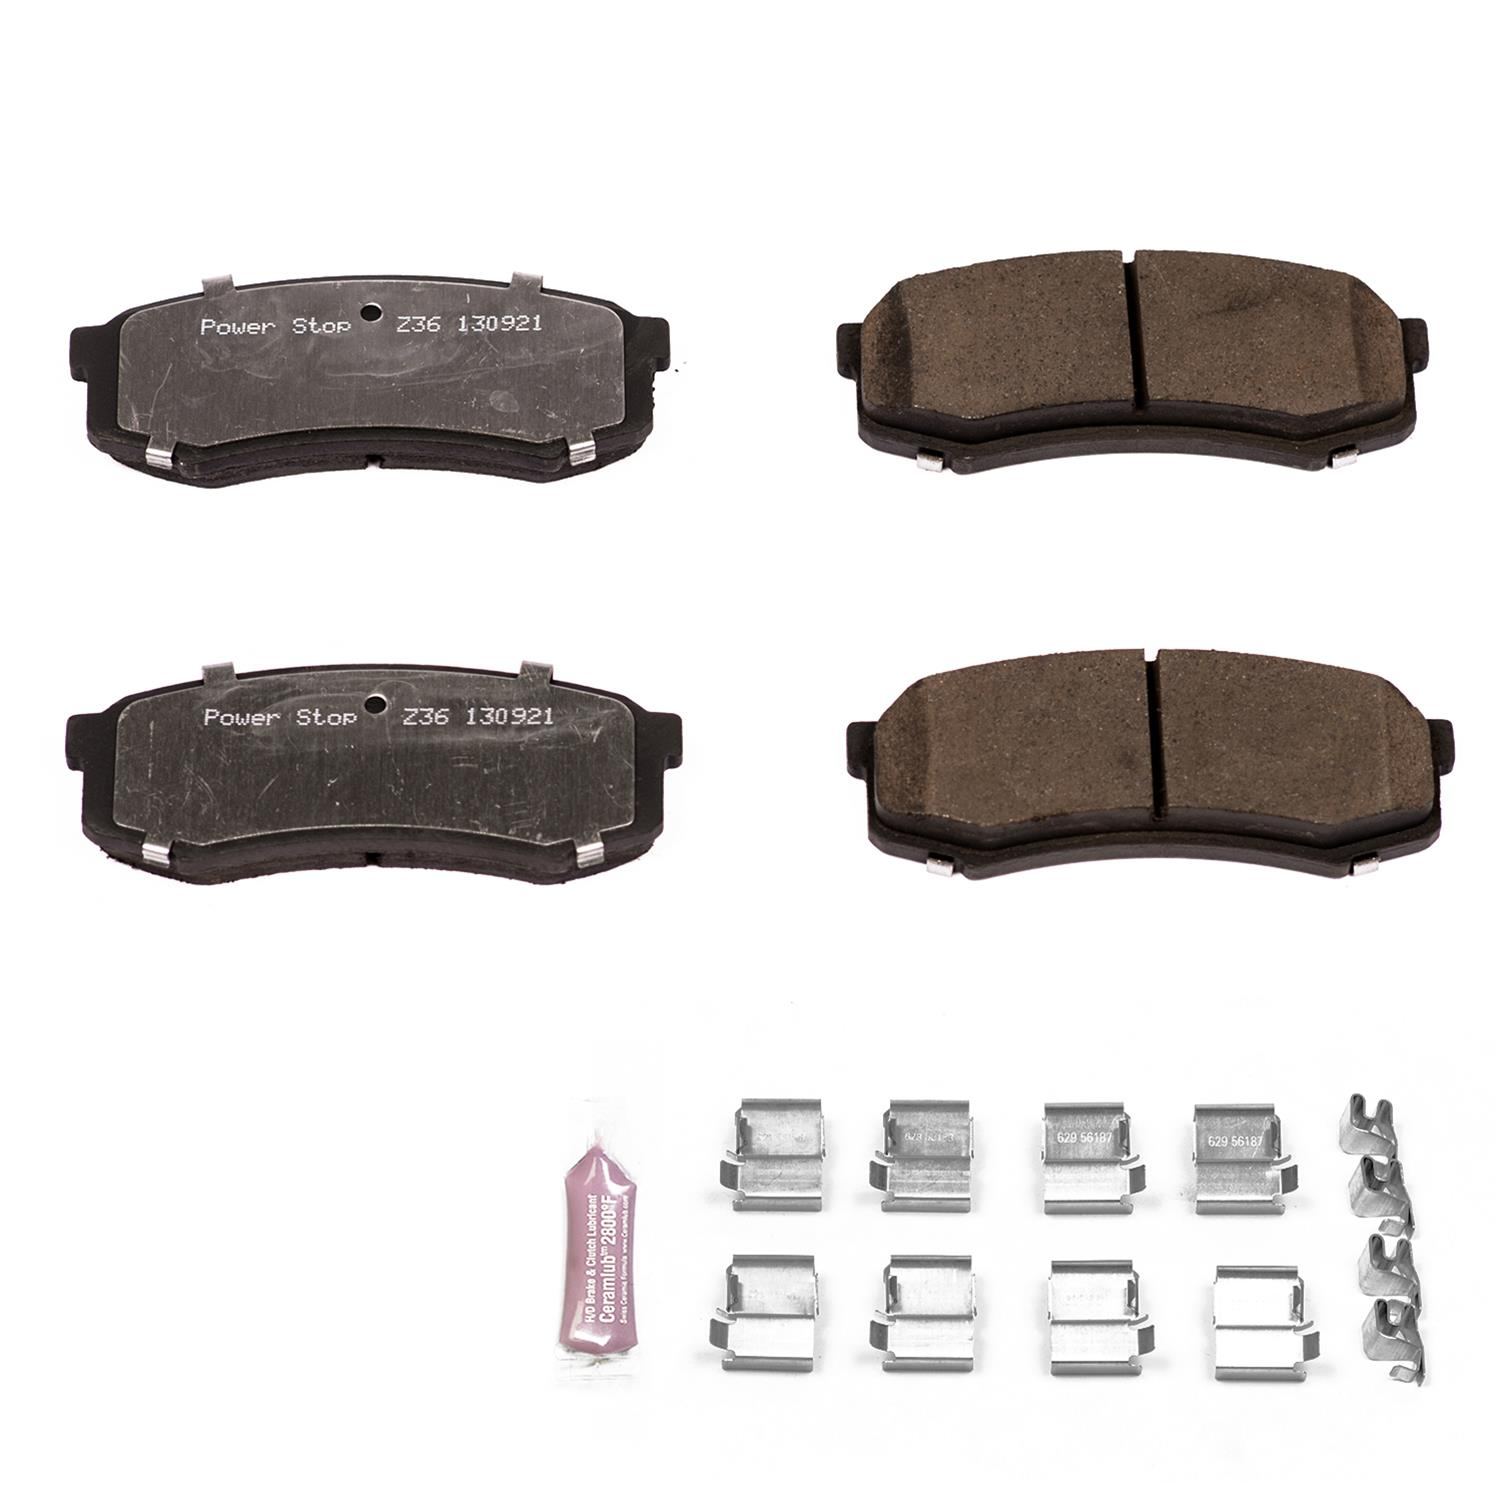 Power Stop Brake Pads Set Rear 2007+